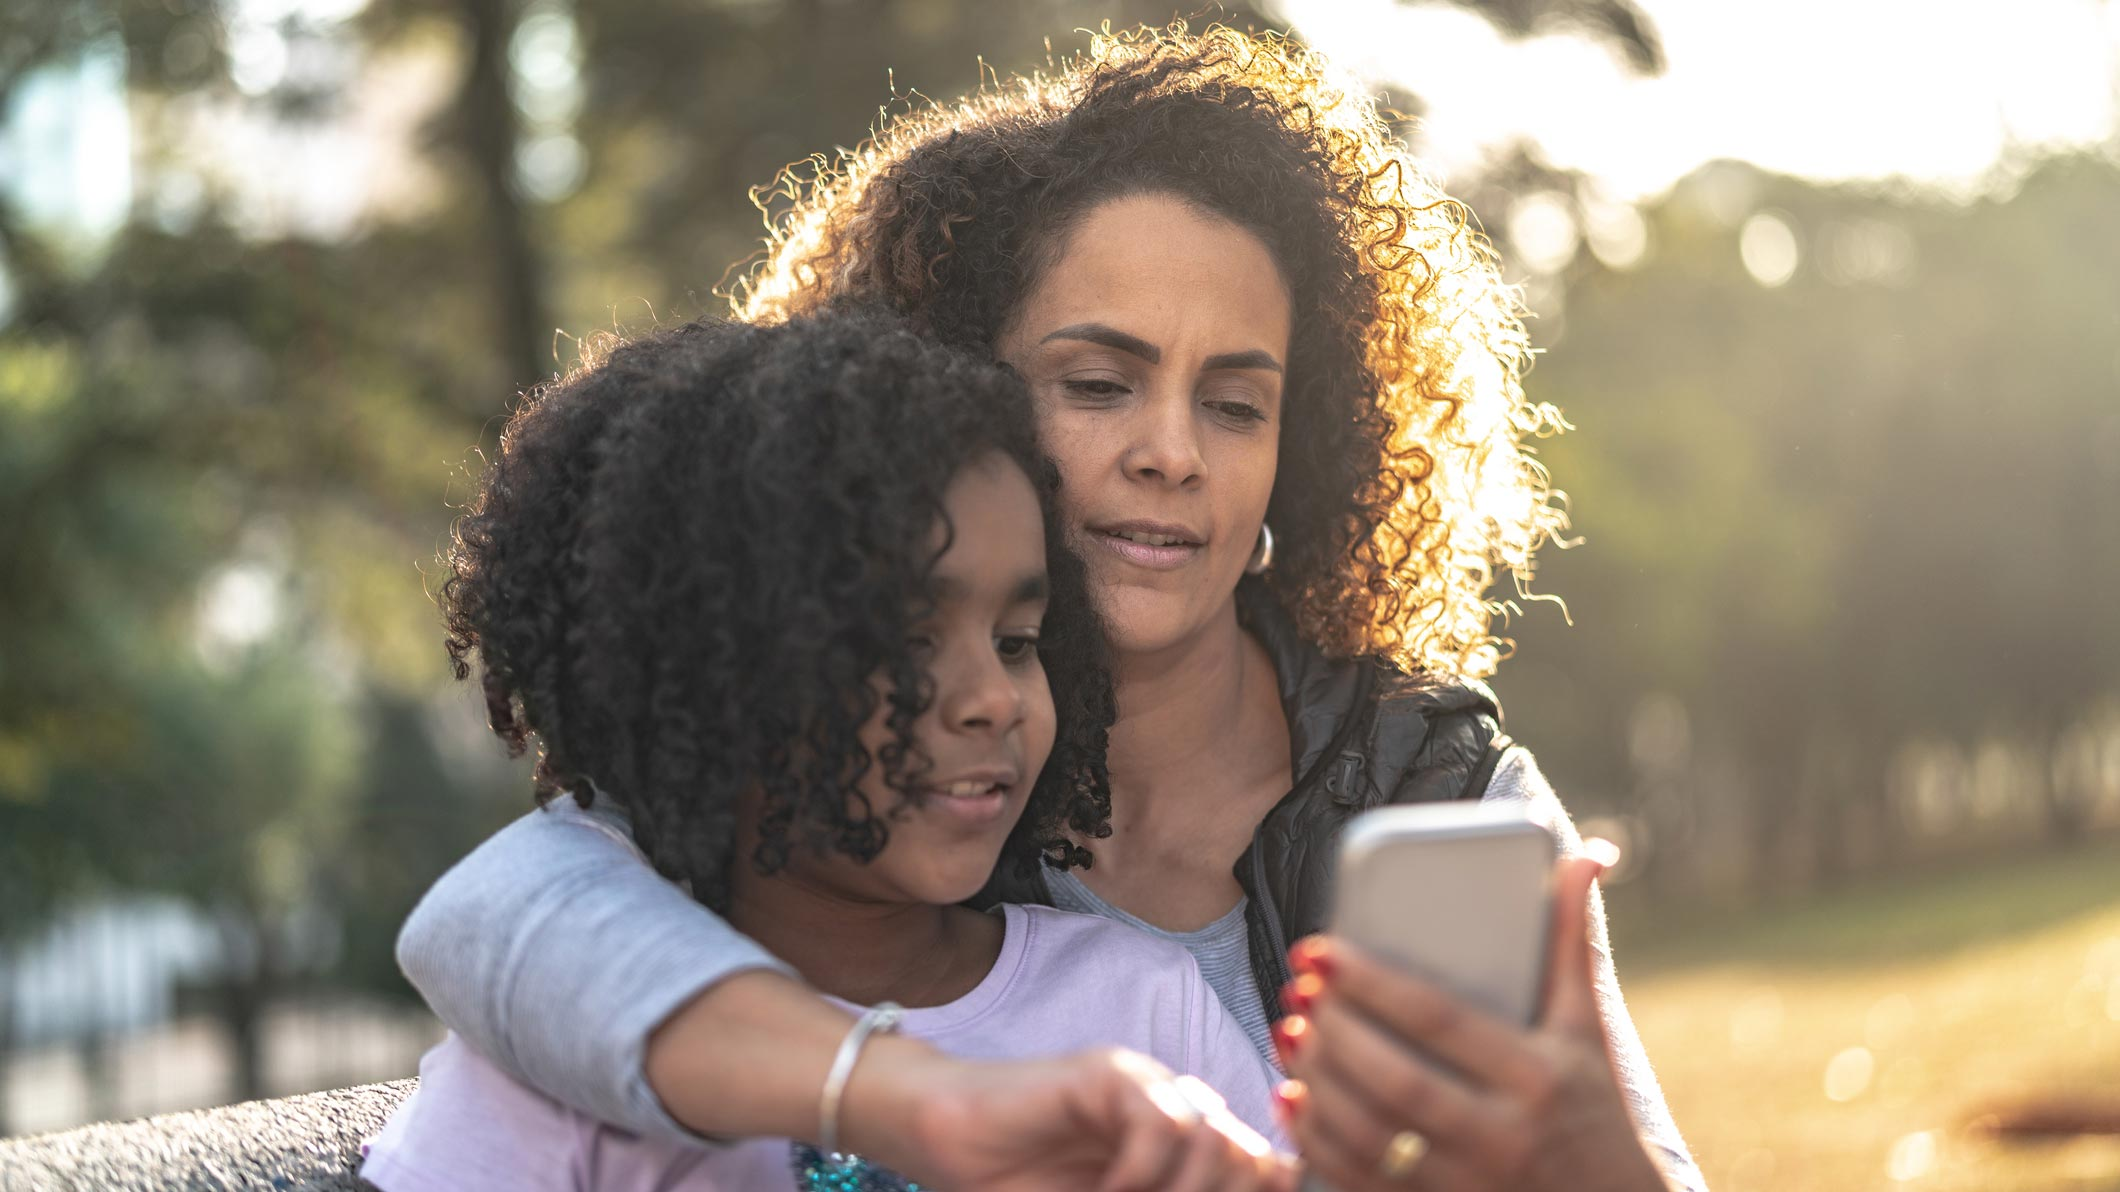 Five things you should track your child's phone